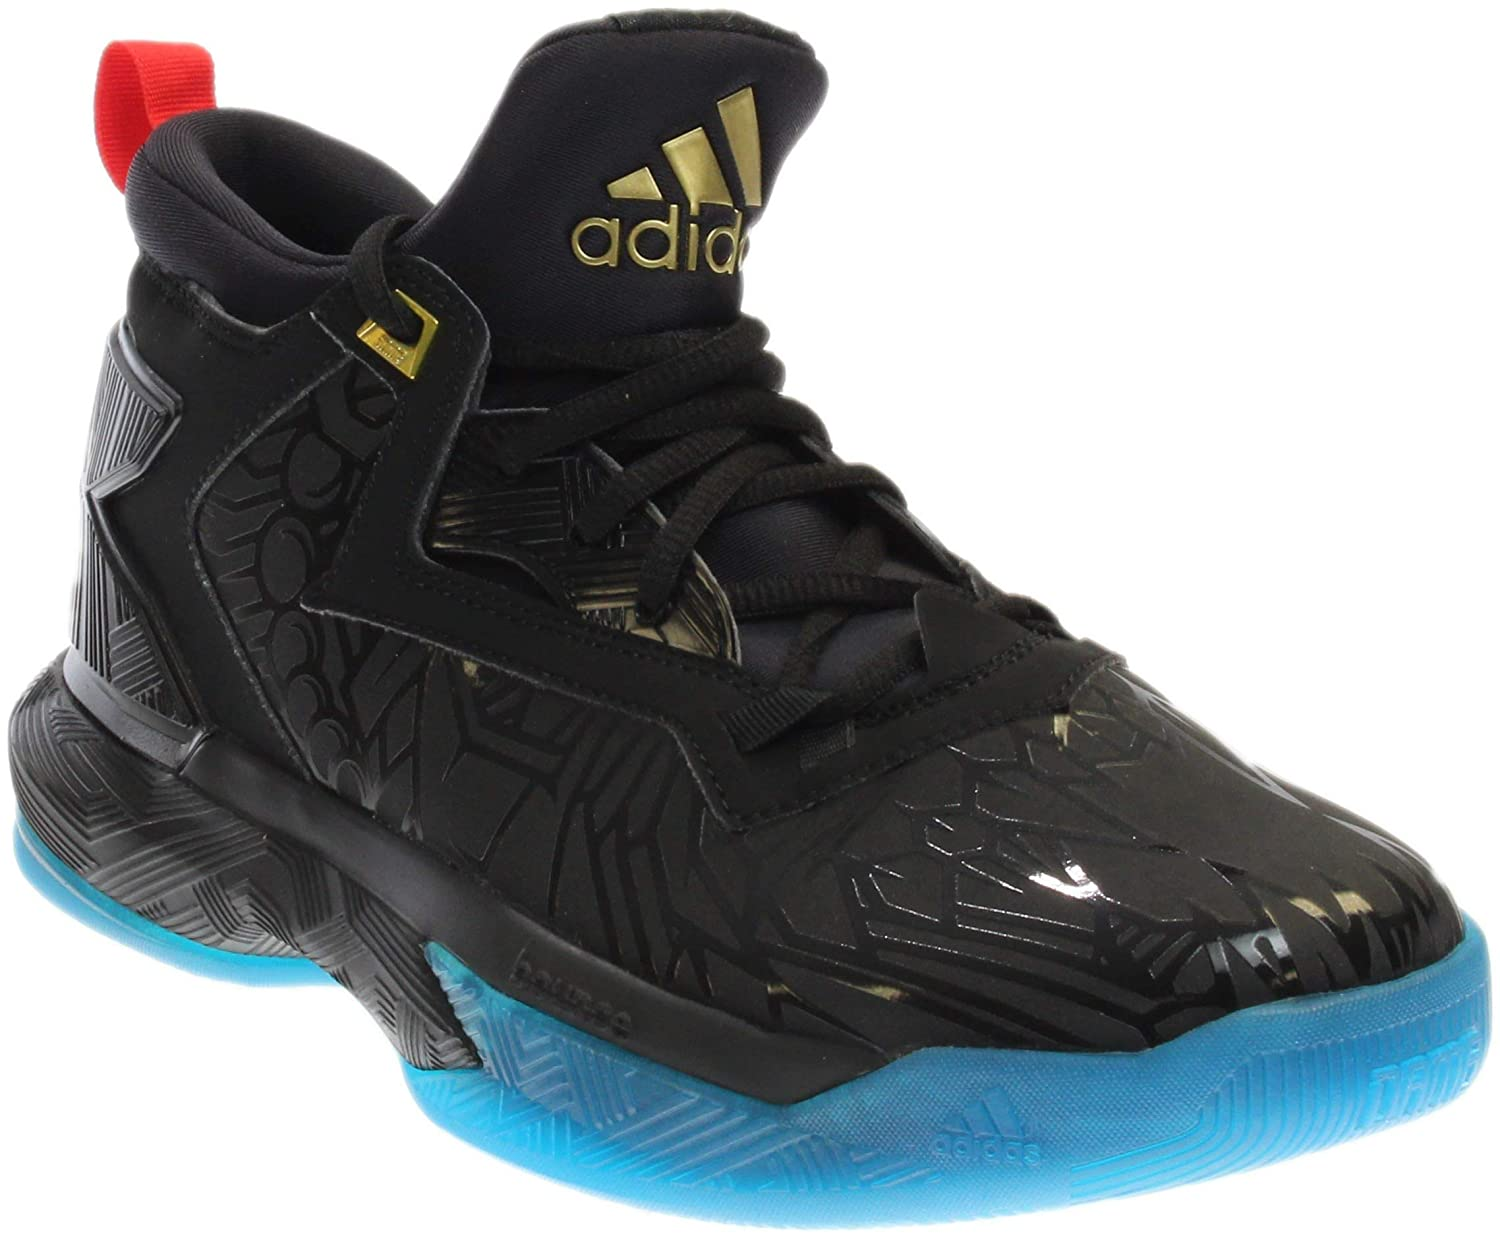 57c9eef5861612 adidas D Lillard 2  Amazon.co.uk  Shoes   Bags